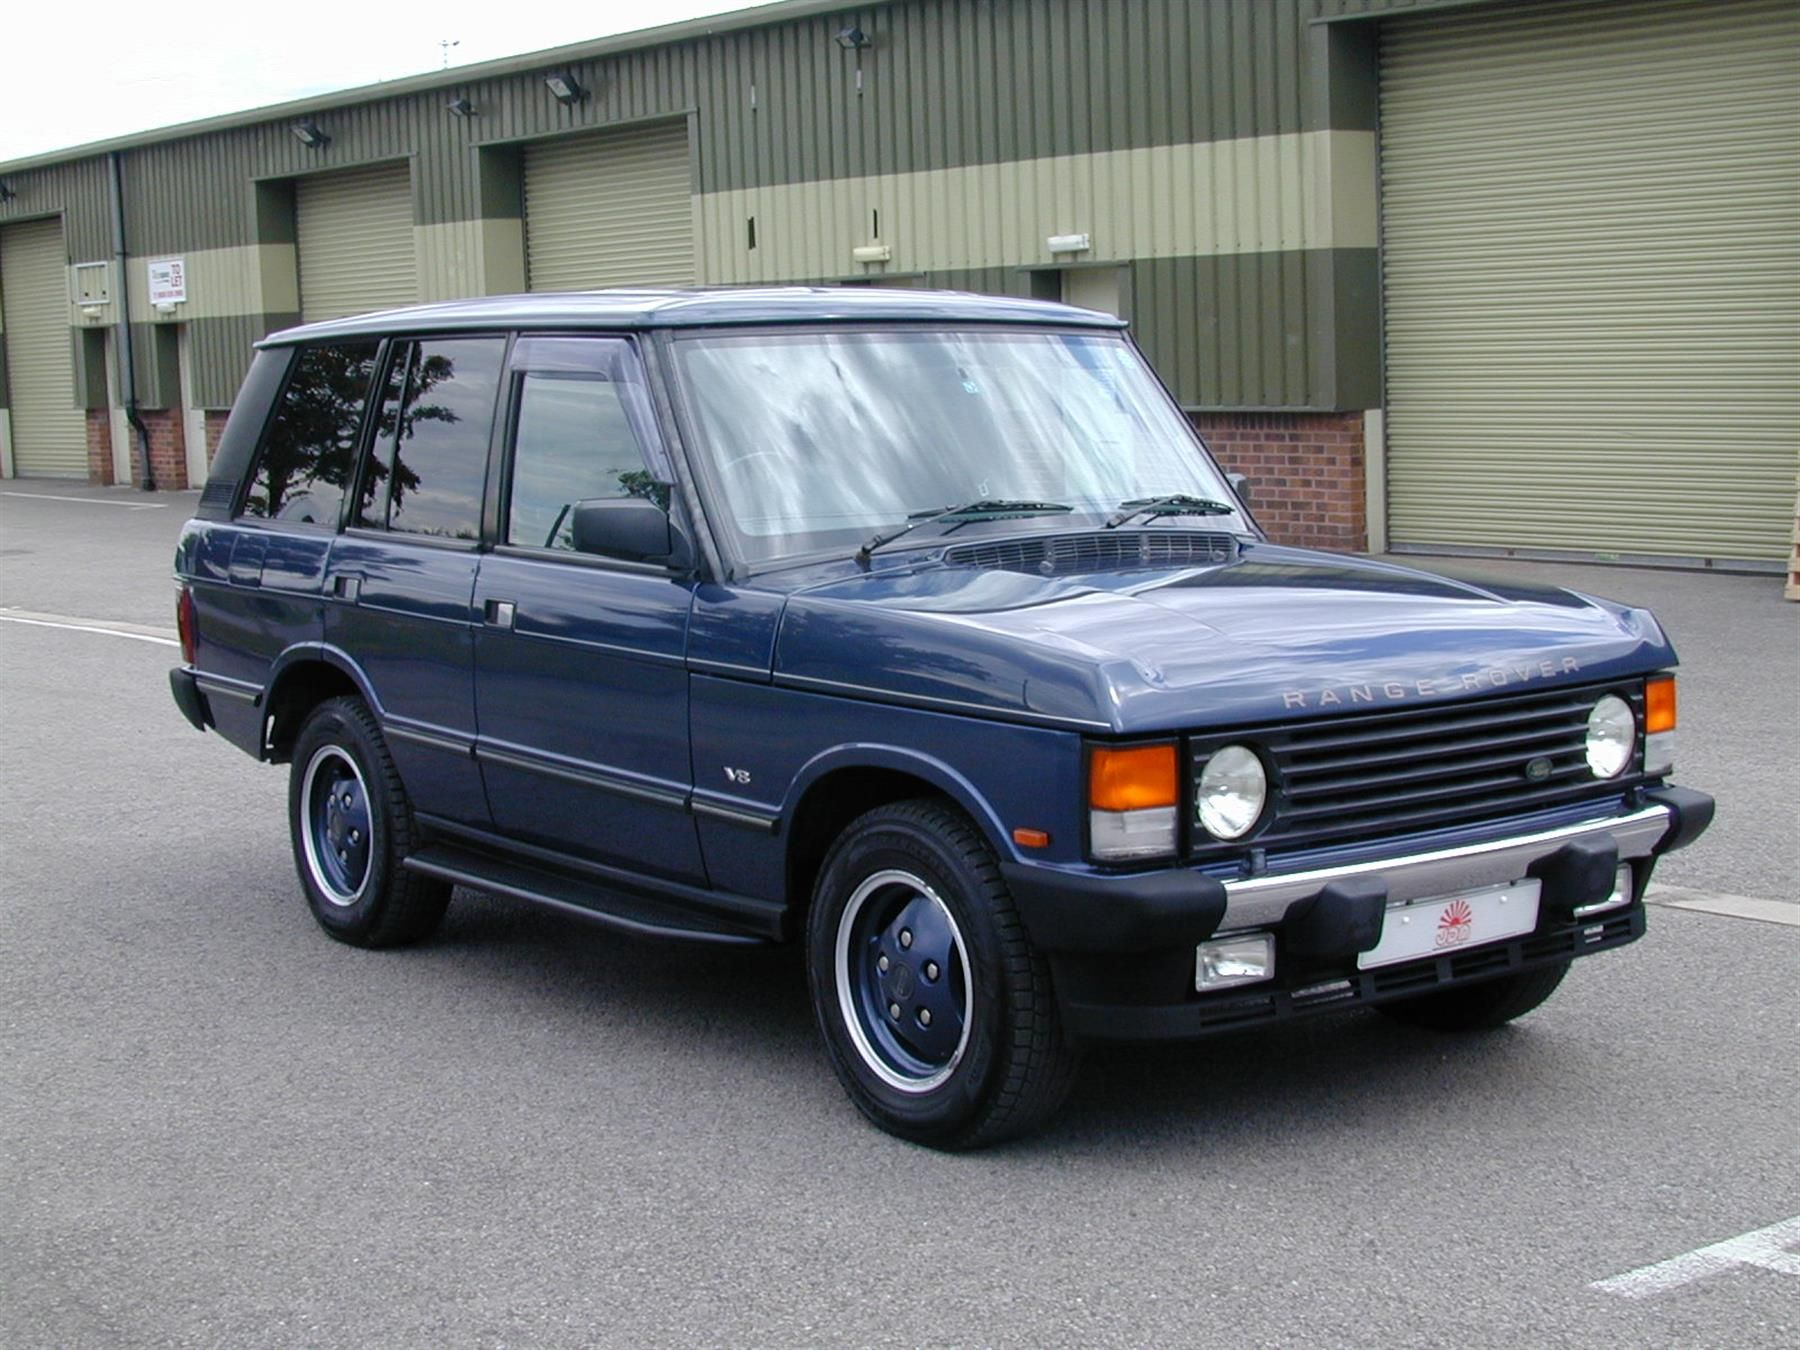 Image result for range rover classic 1994 cars